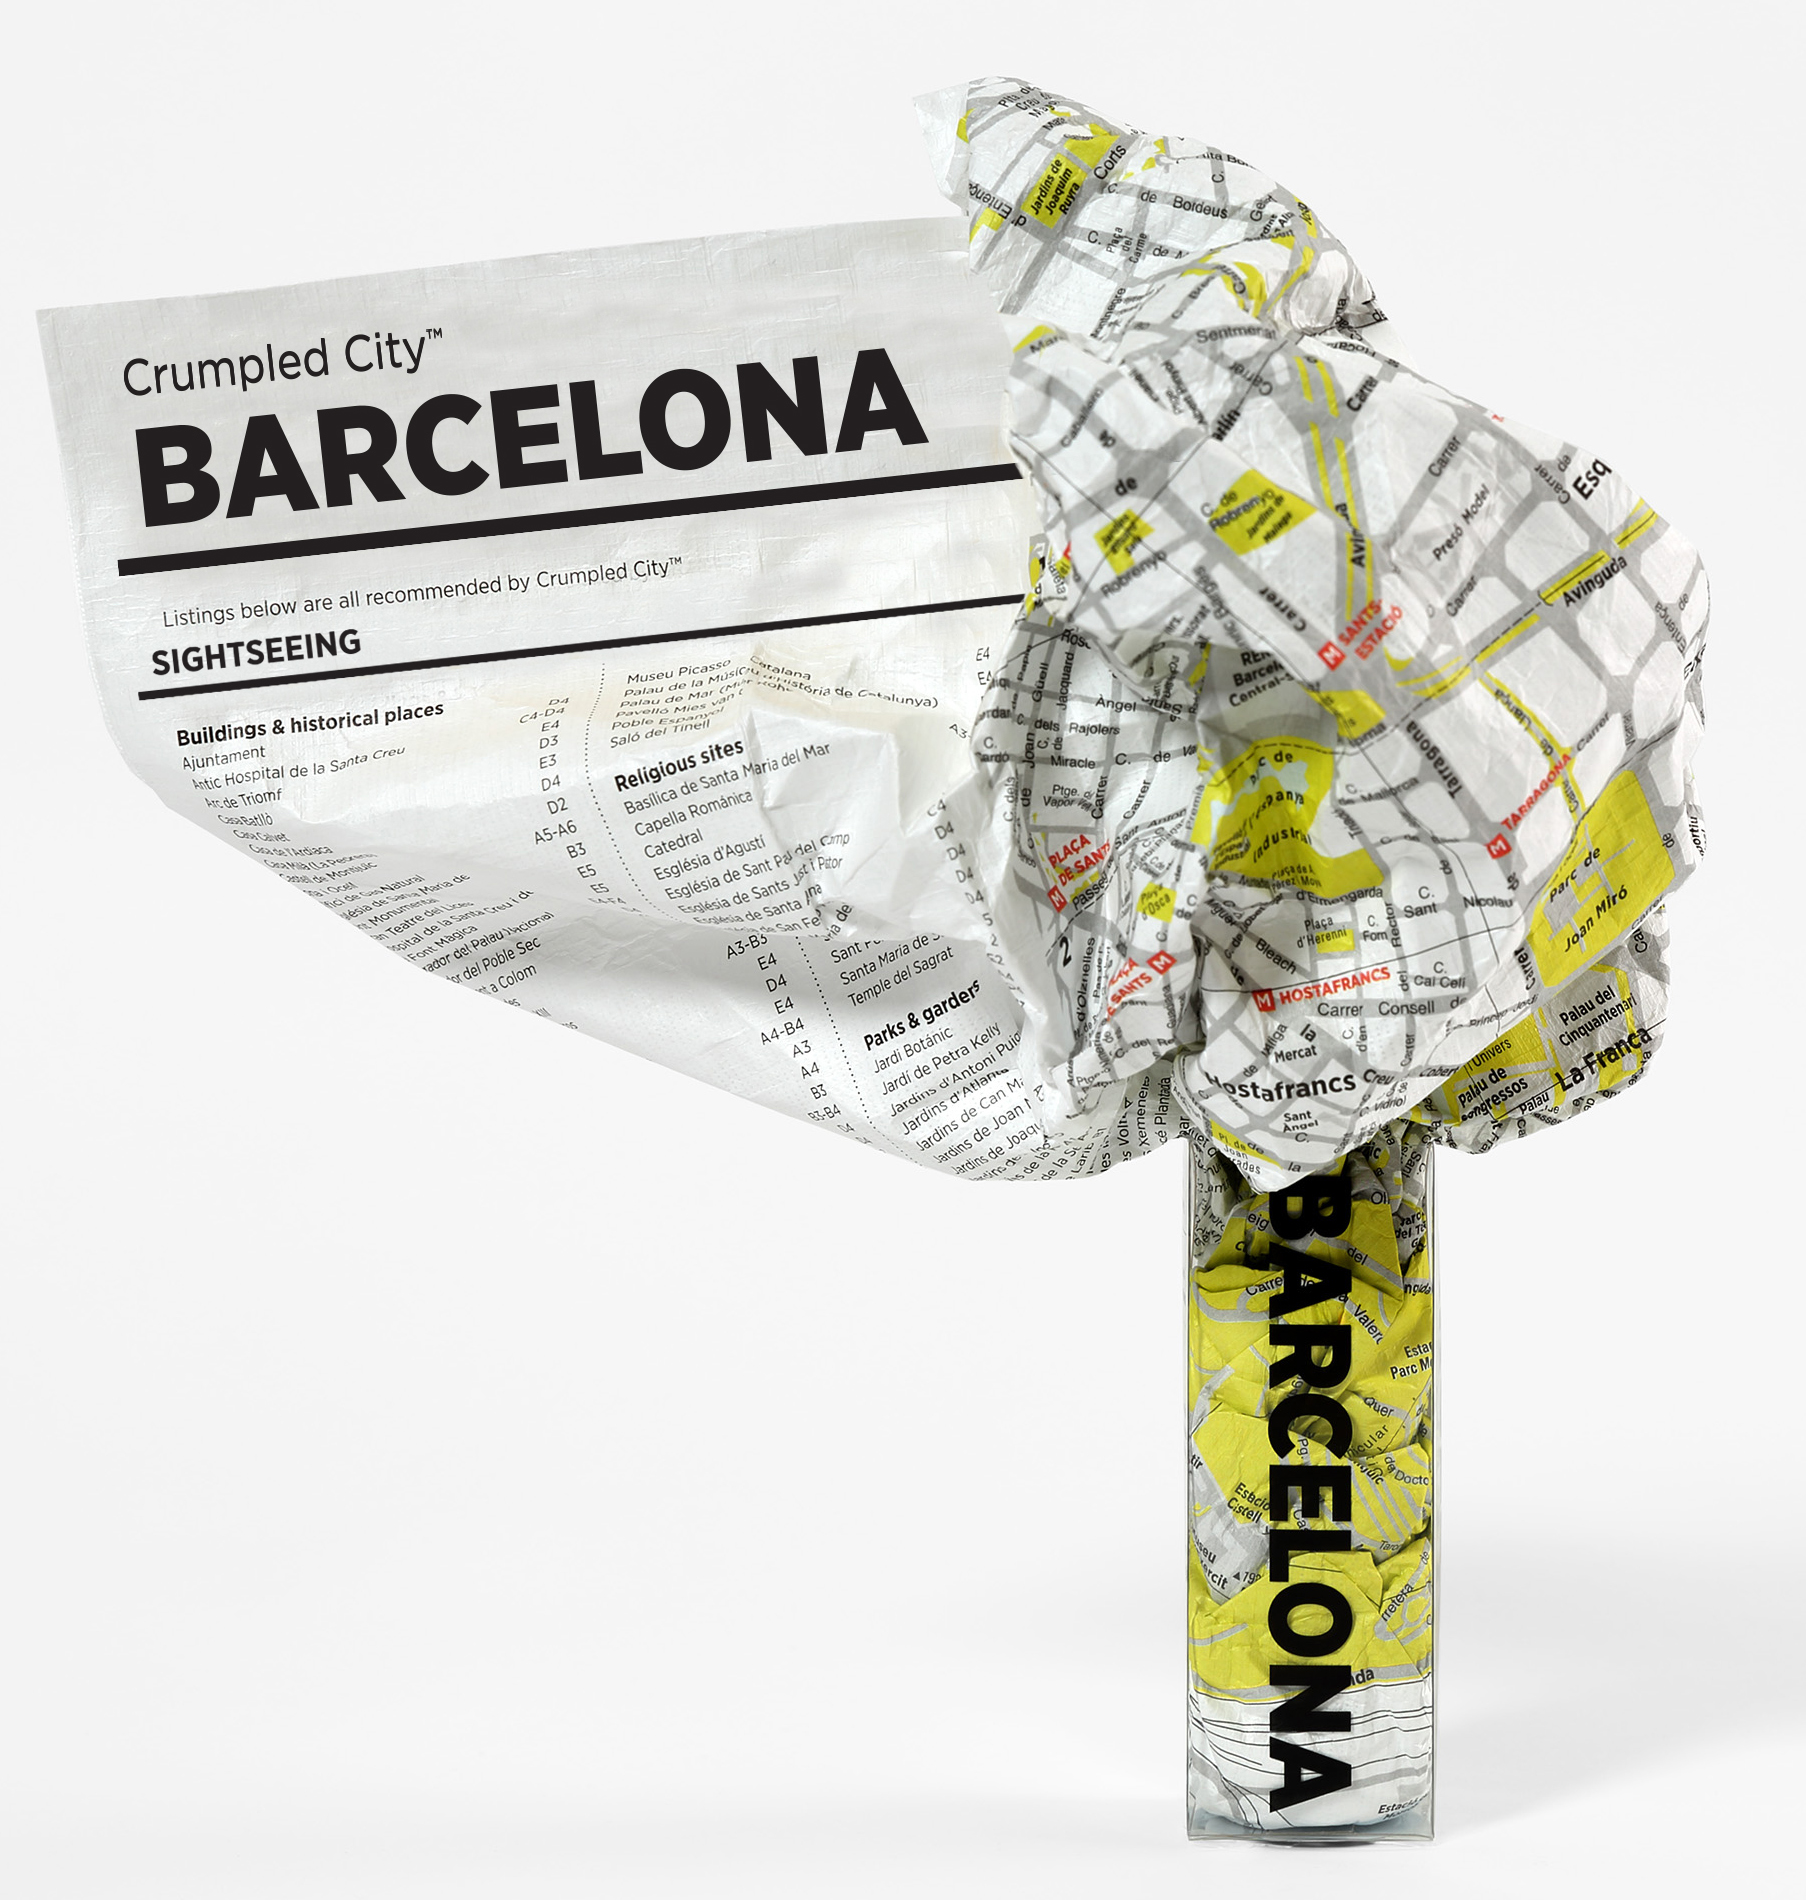 Crumpled city Barcelona